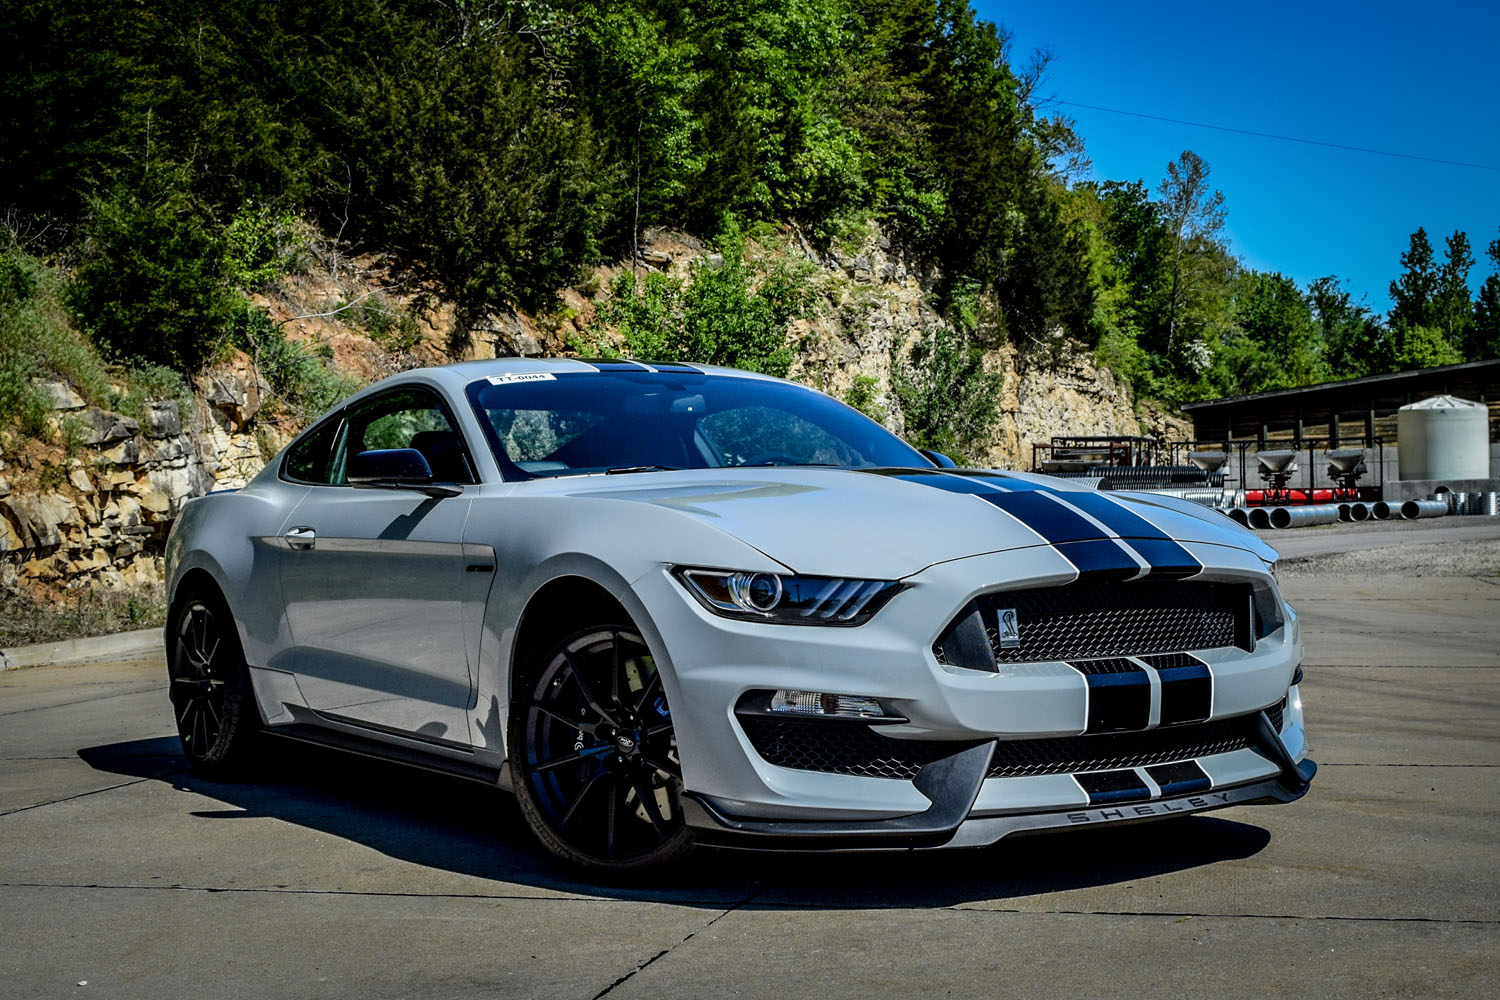 A Day With The New Shelby Mustang Gt350